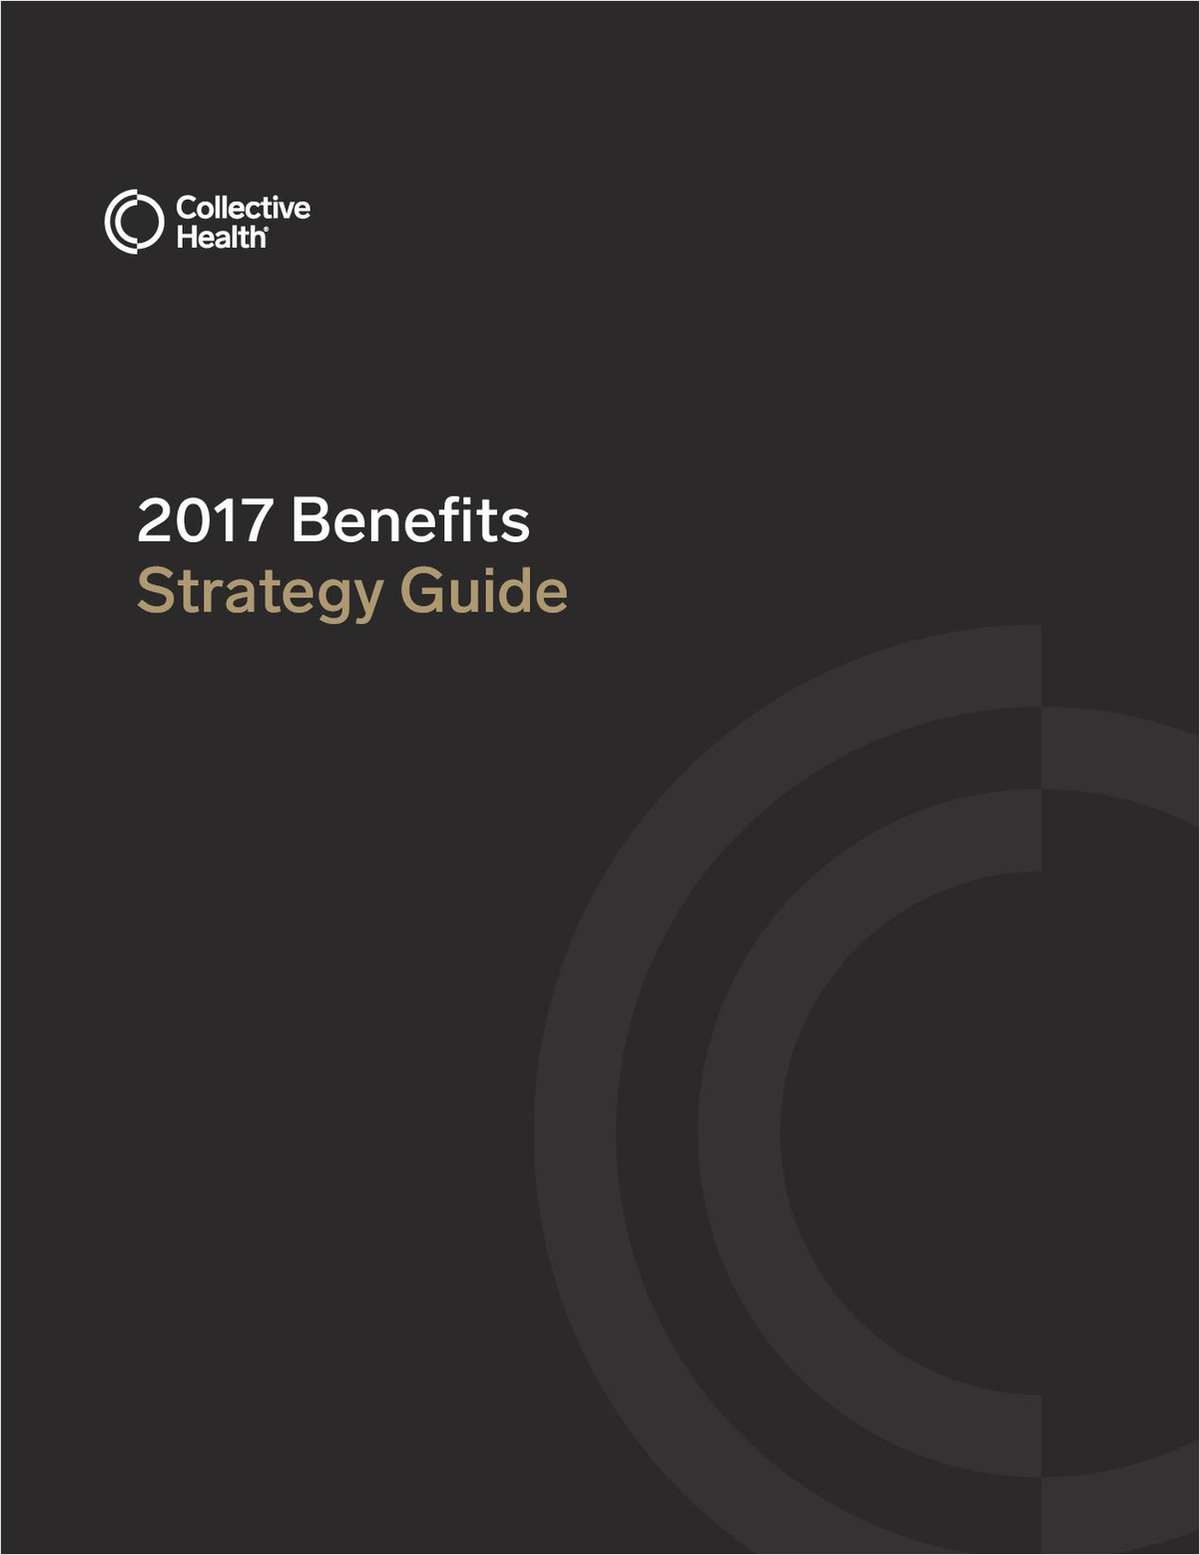 2017 Benefits Strategy Guide